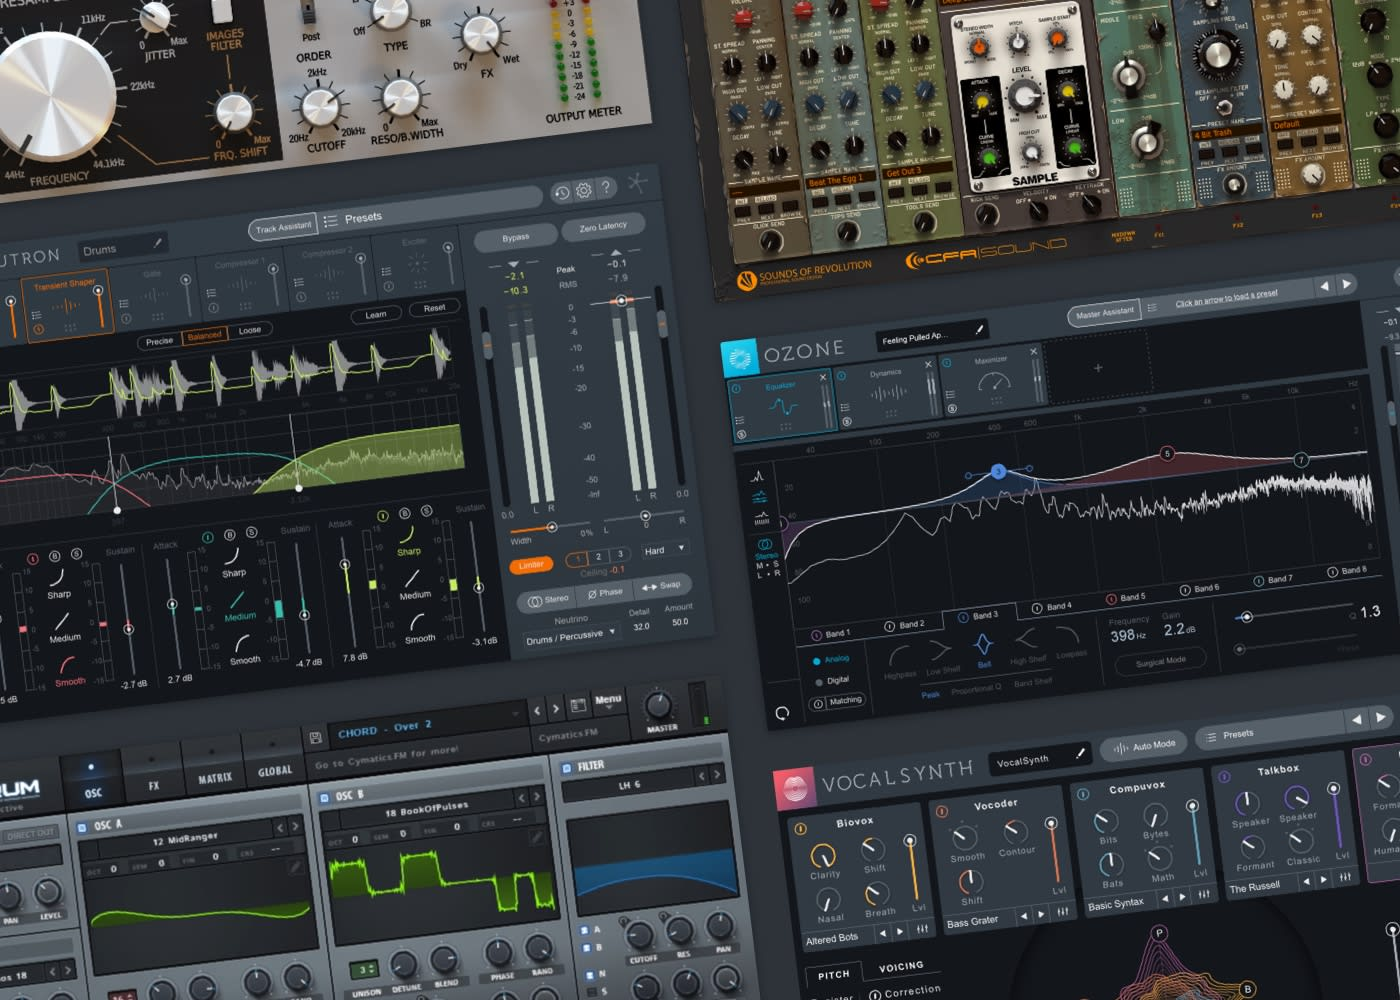 Plugins - Most Popular (VST, AU) | Splice